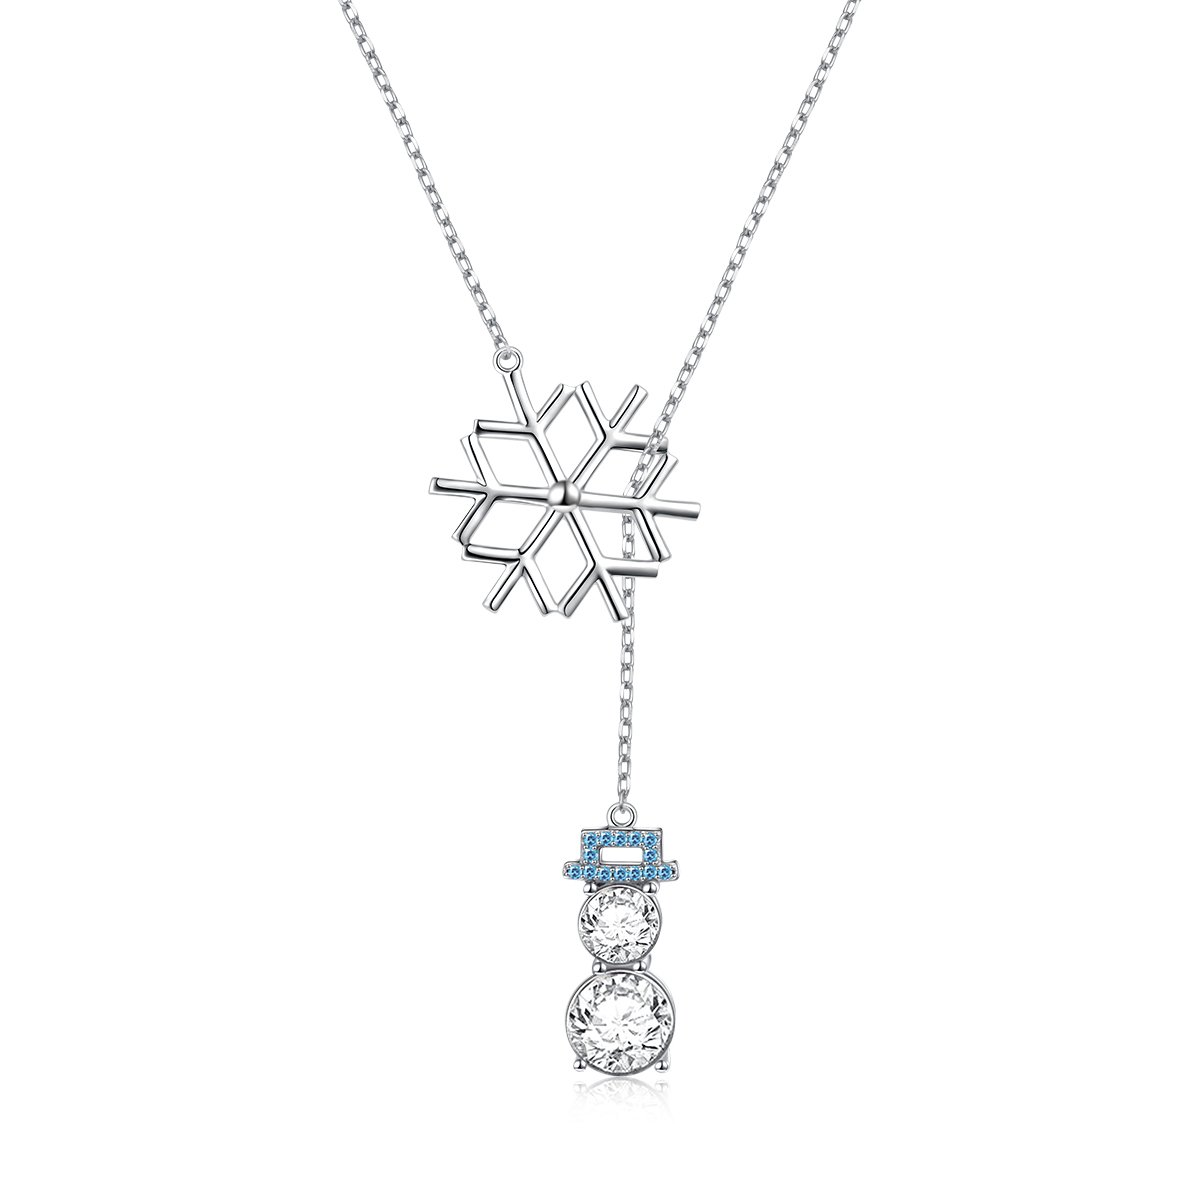 """LINLIN FINE JEWELRY 925 Sterling Silver CZ Snowflake Cute Snowman Y-Shaped Lariat Necklace for Women Girls,20"""""""